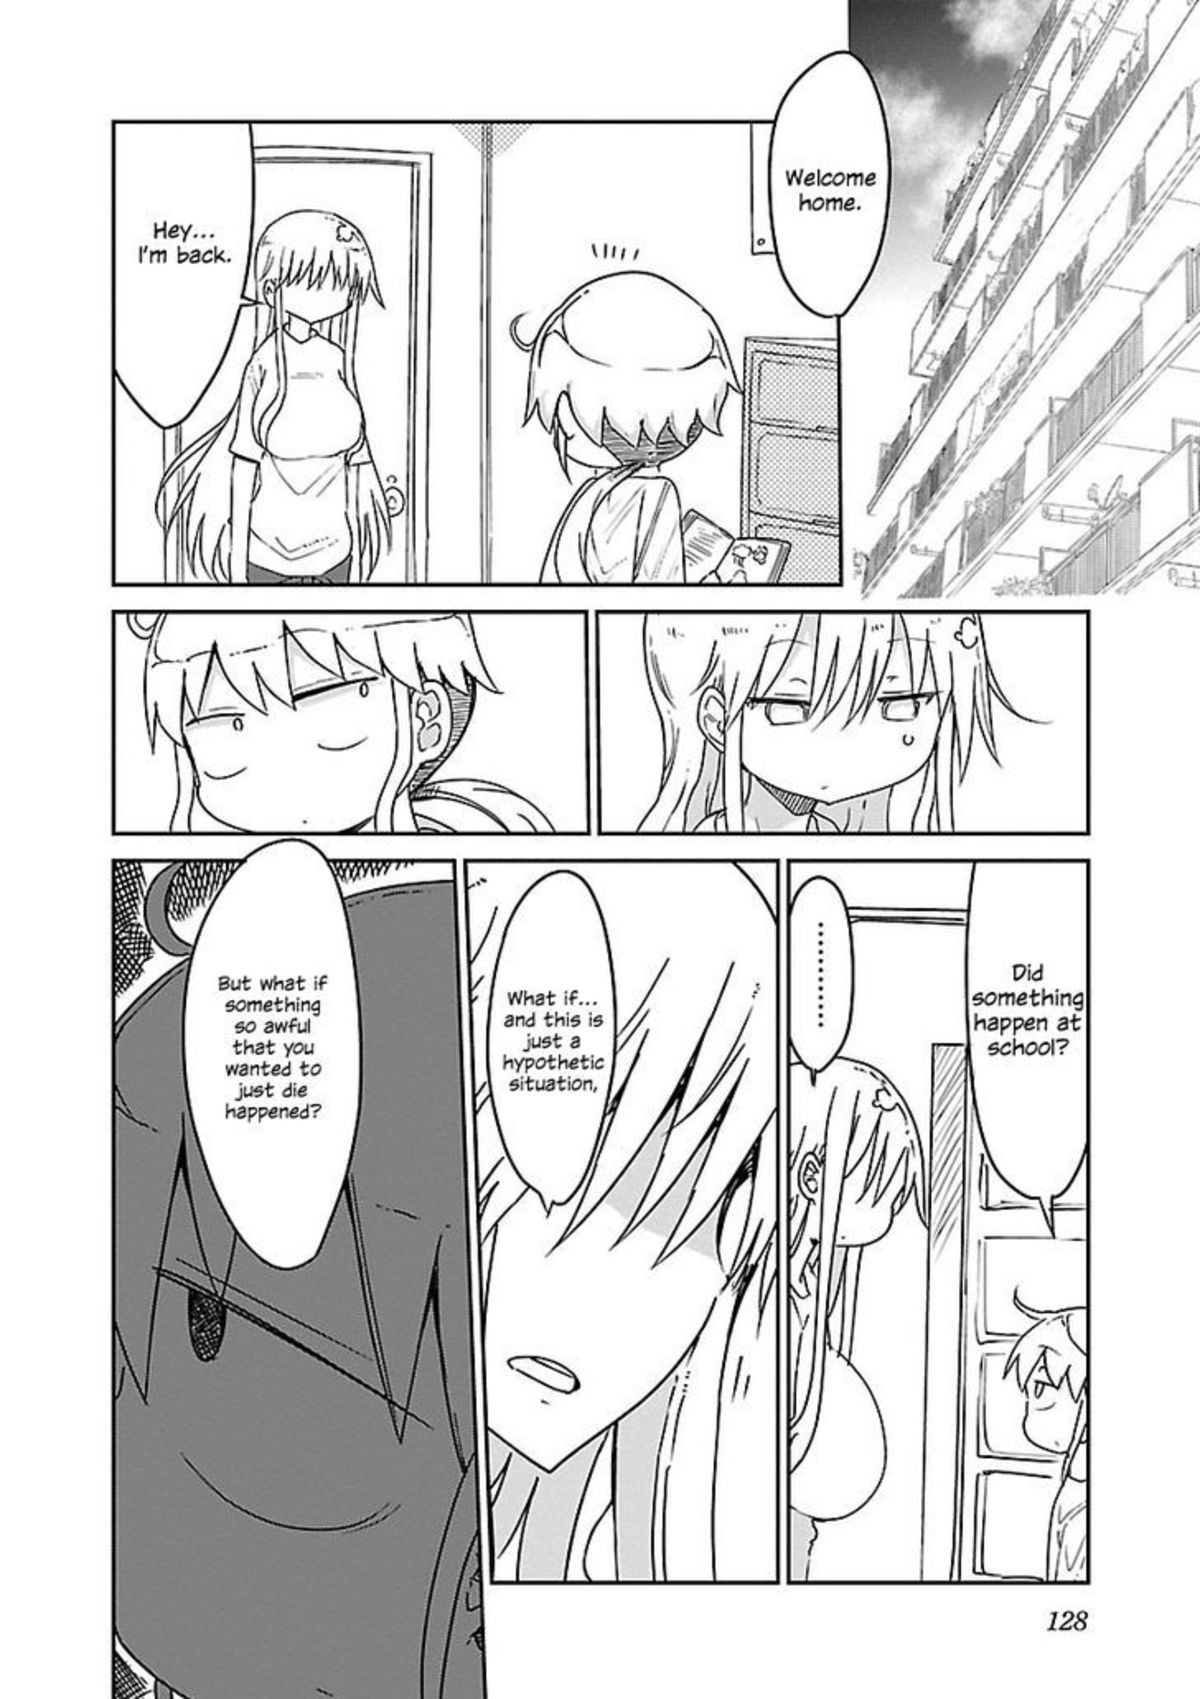 Euro manga just go real. Alot of character development for a manga that's about tits .. Didn't she literally rape him after that?